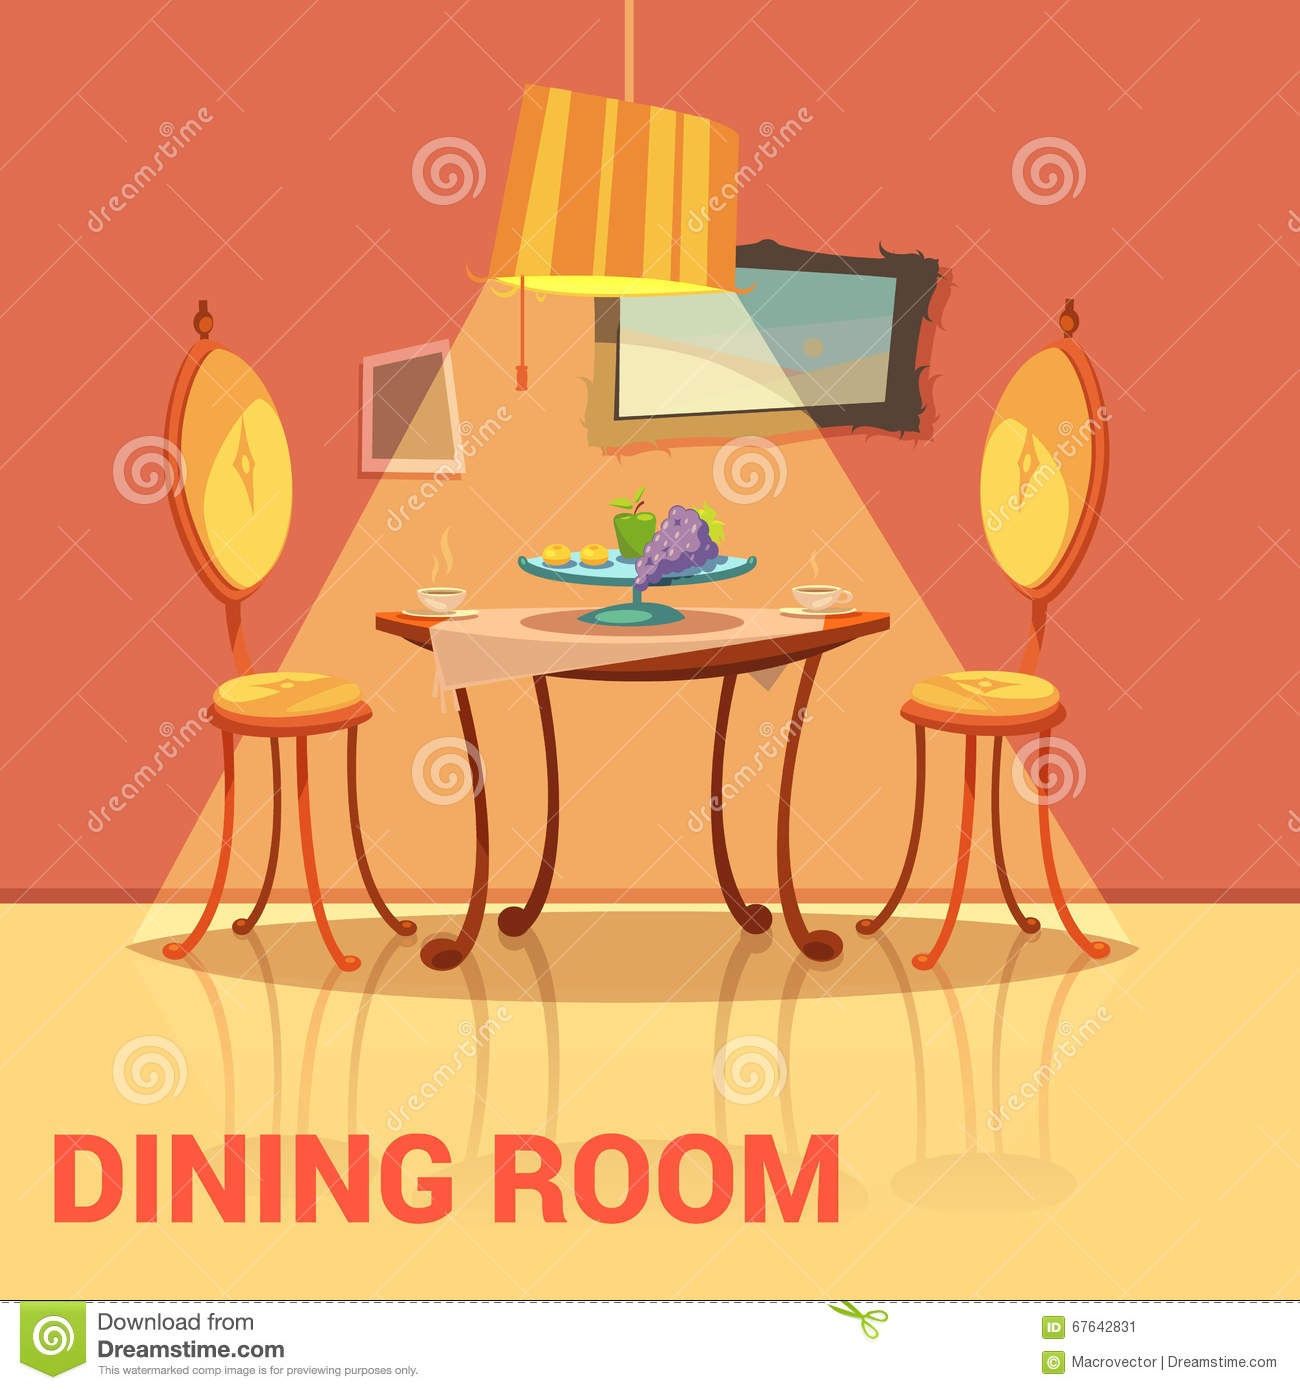 Dining Room Retro Design Stock Vector Image 67642831